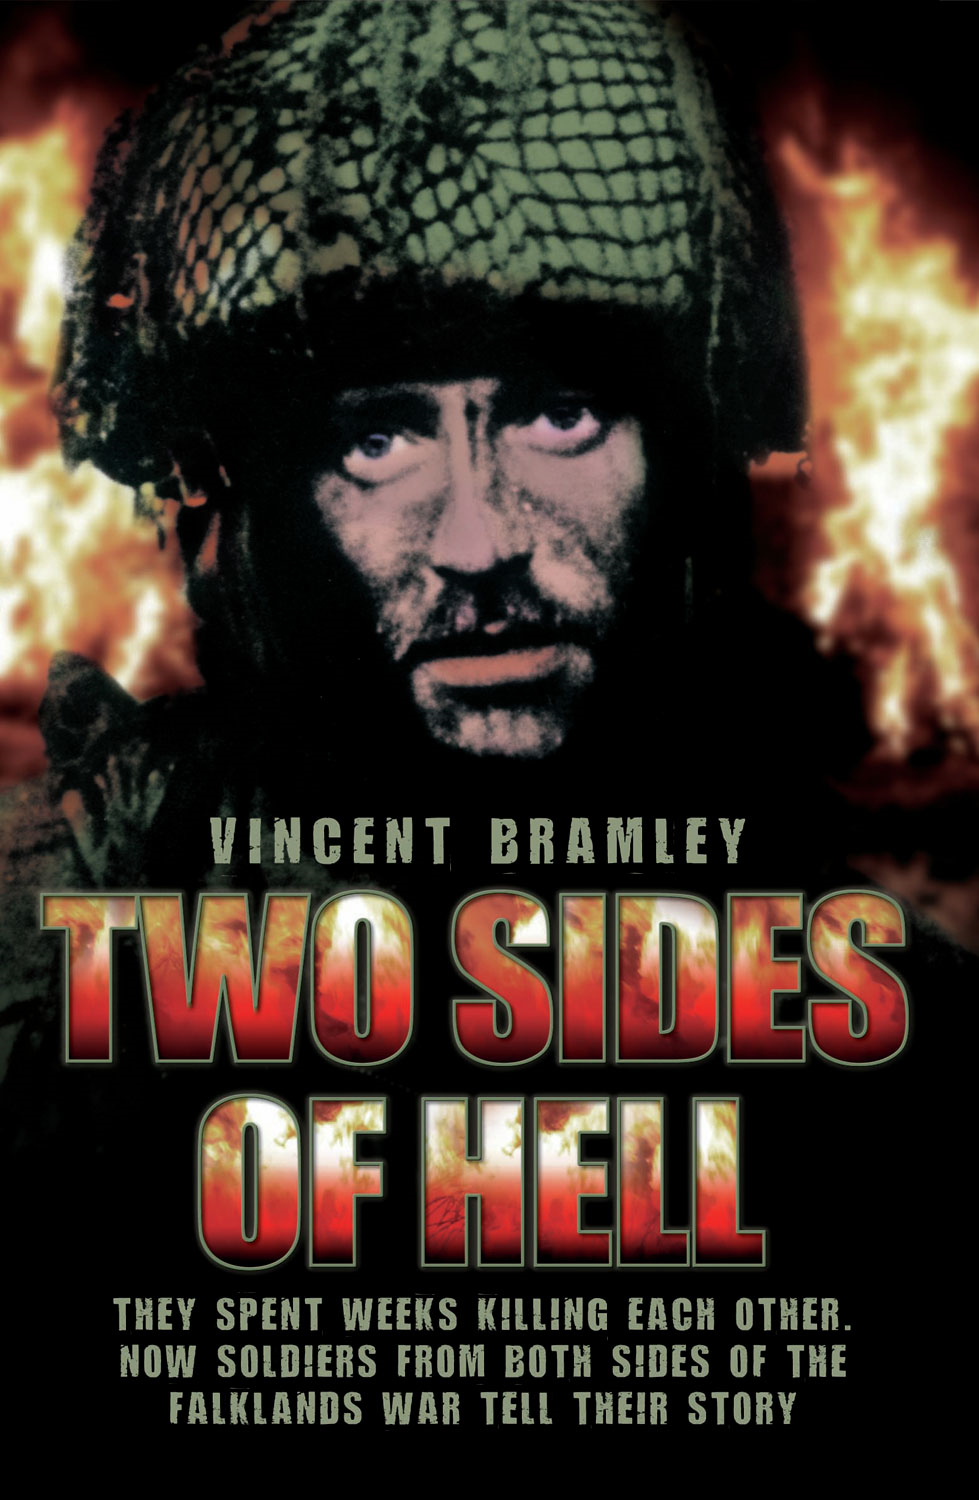 Two Sides of Hell